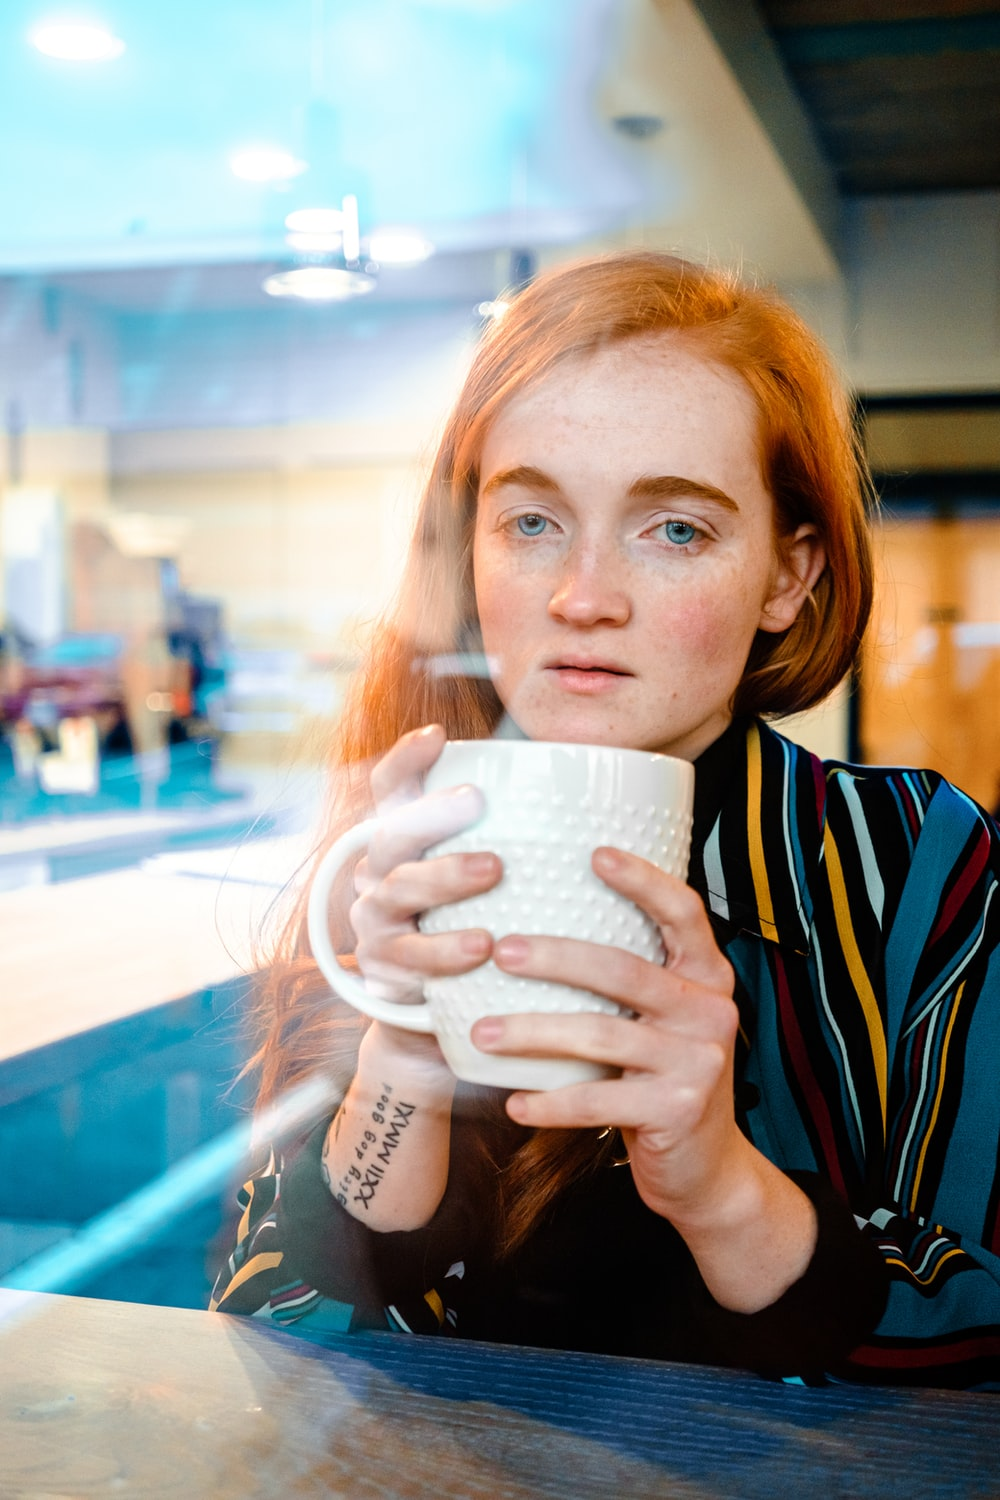 woman in blue and white striped shirt drinking from white ceramic mug